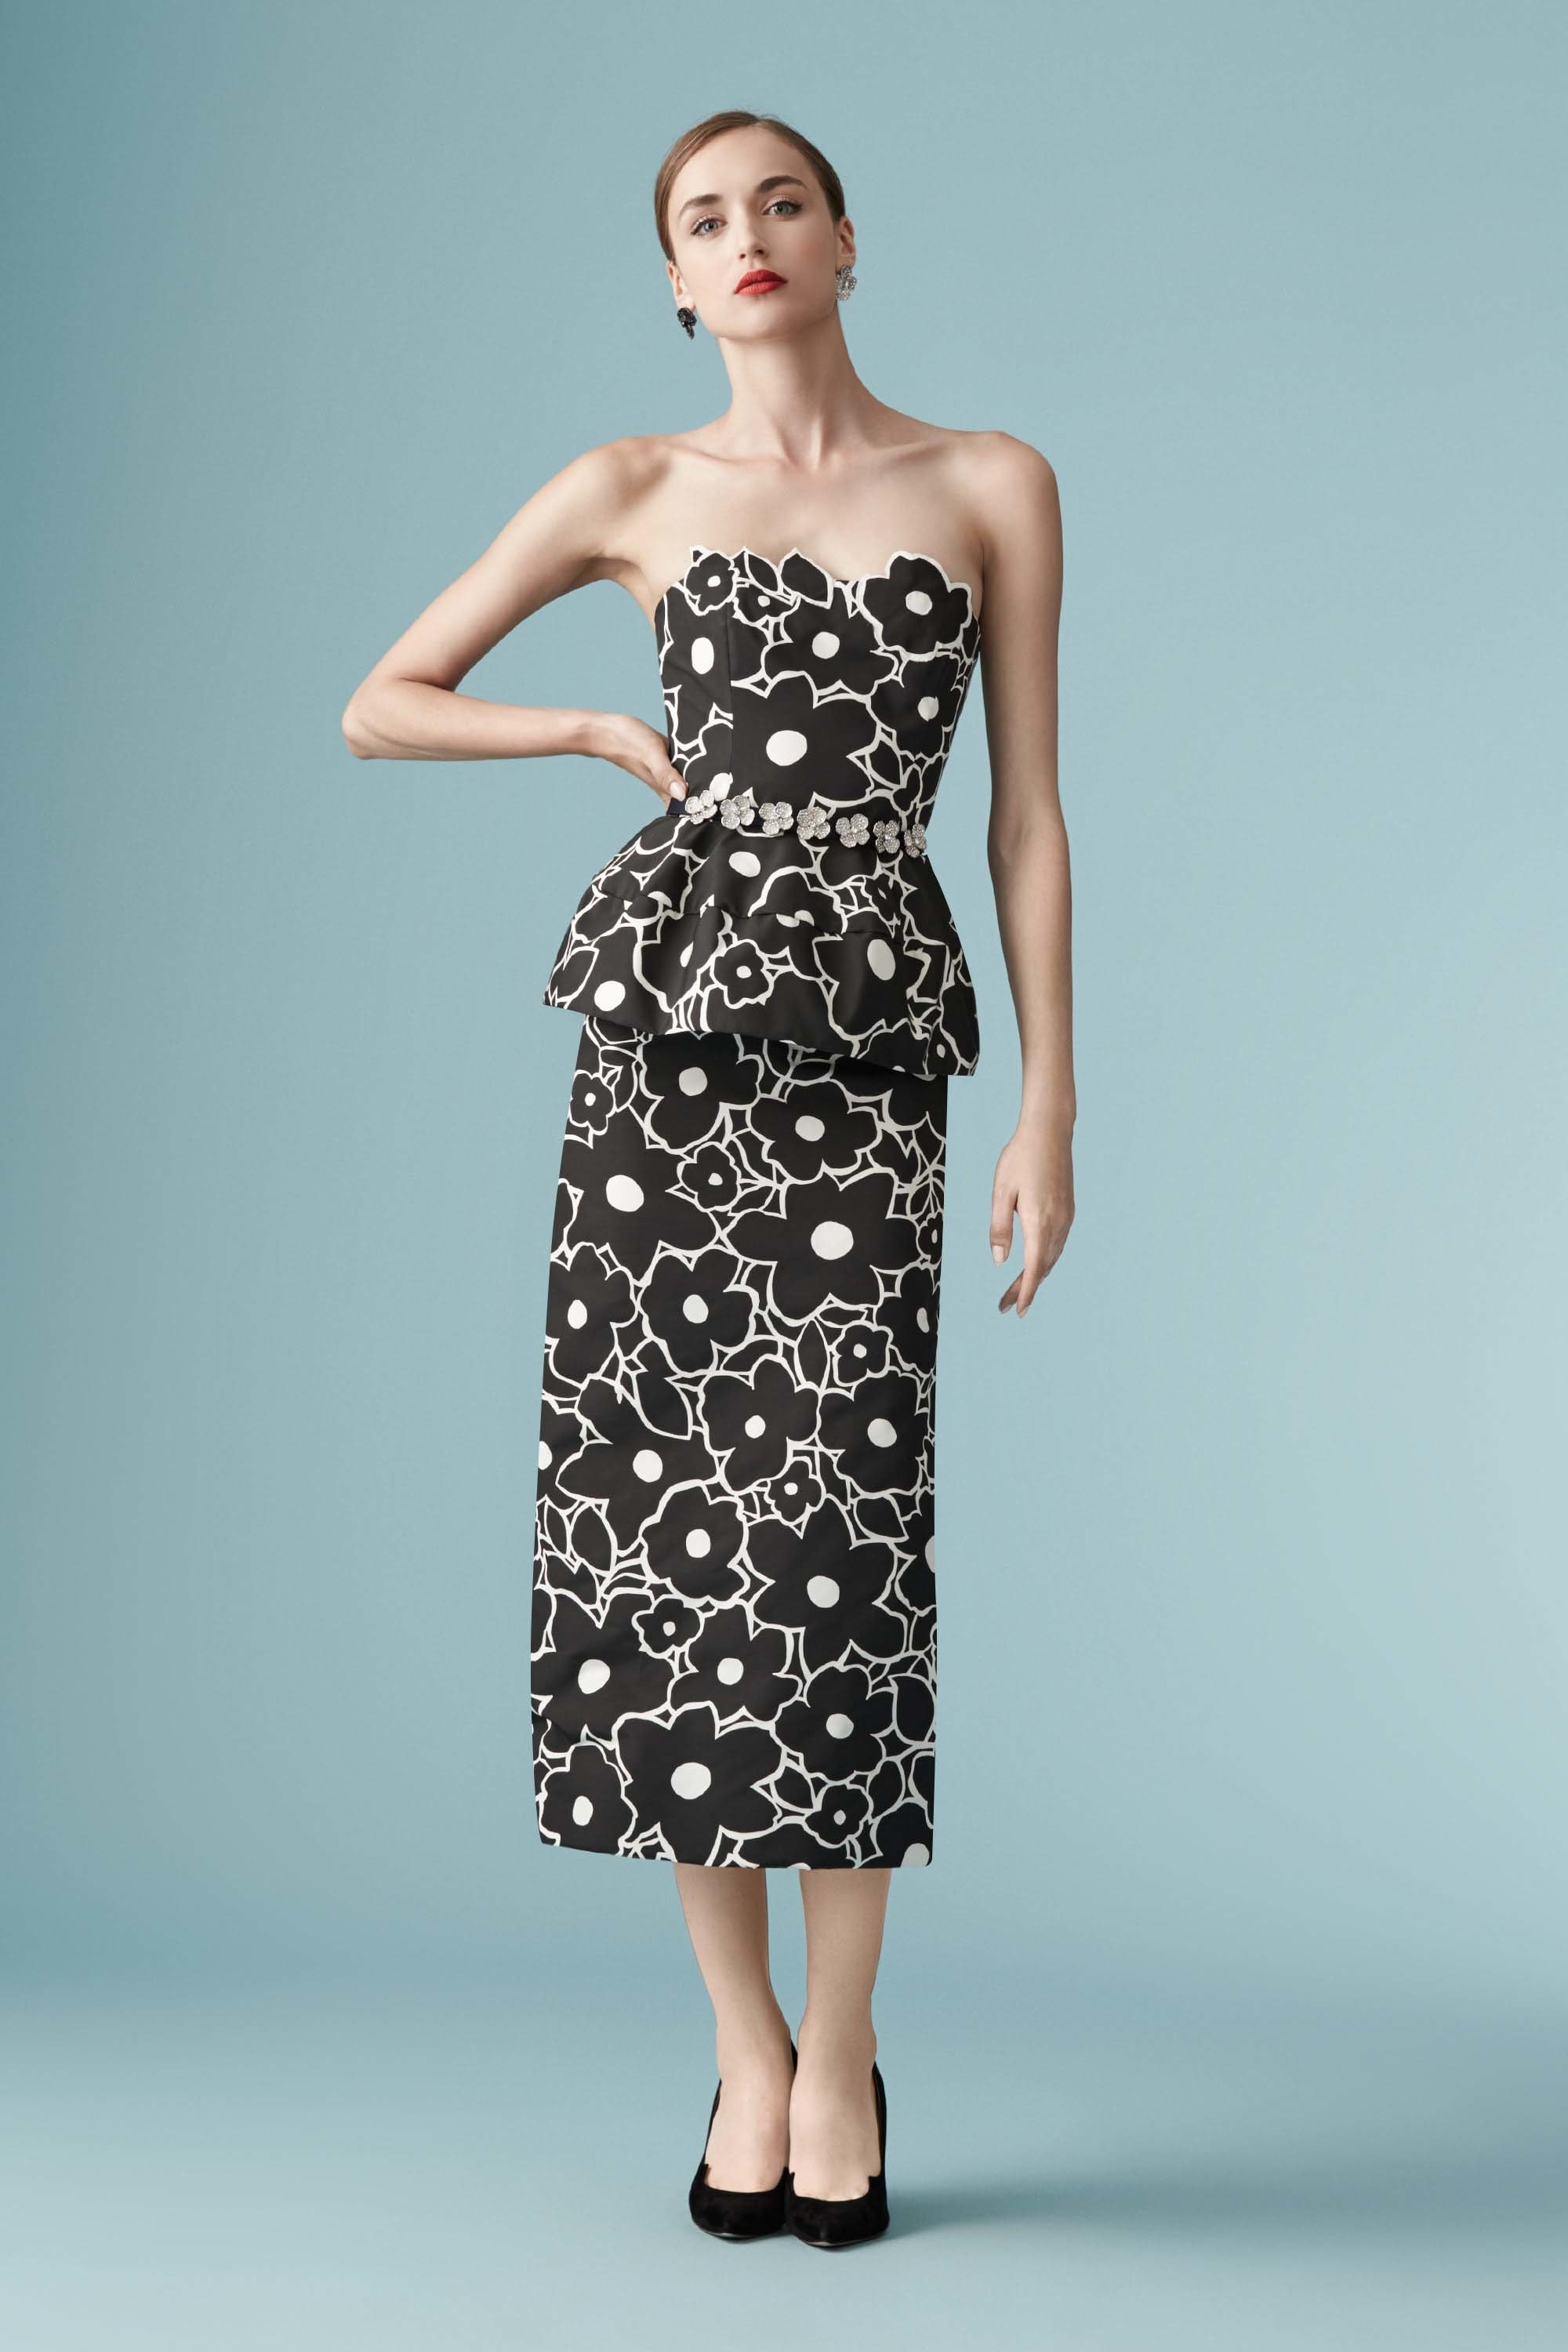 07-carolina-herrera-resort-17